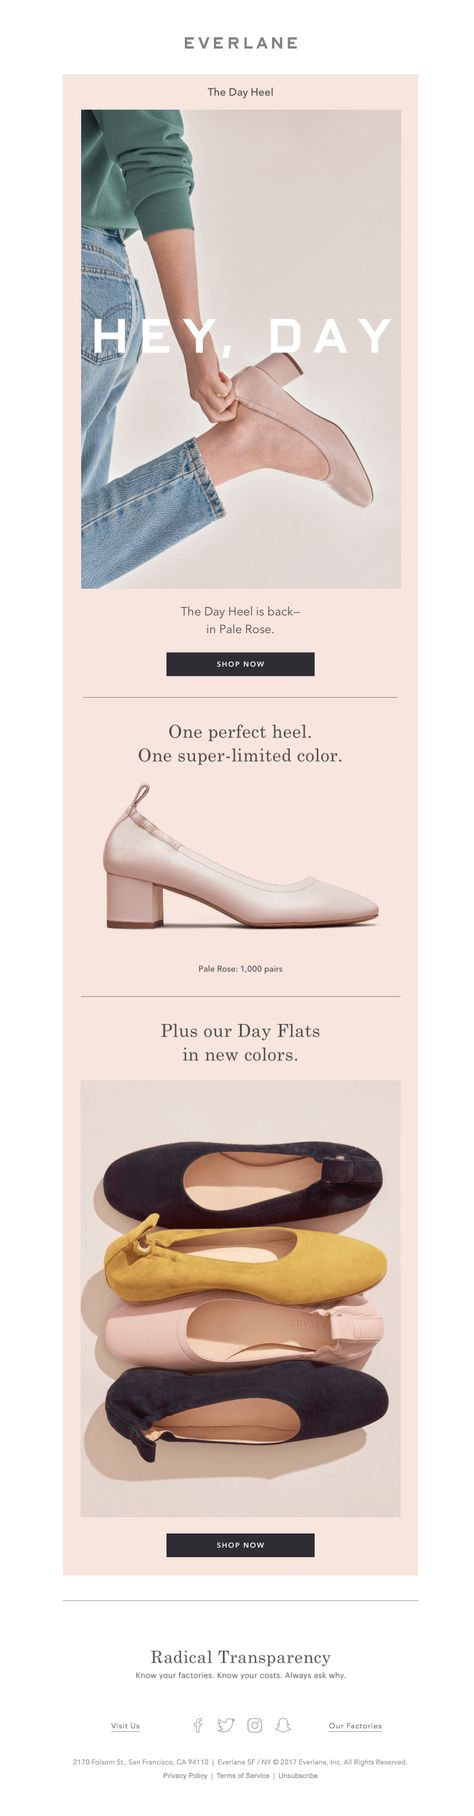 Trend Alert: How to Use Millennial Pink in Your Email Design - Email Design